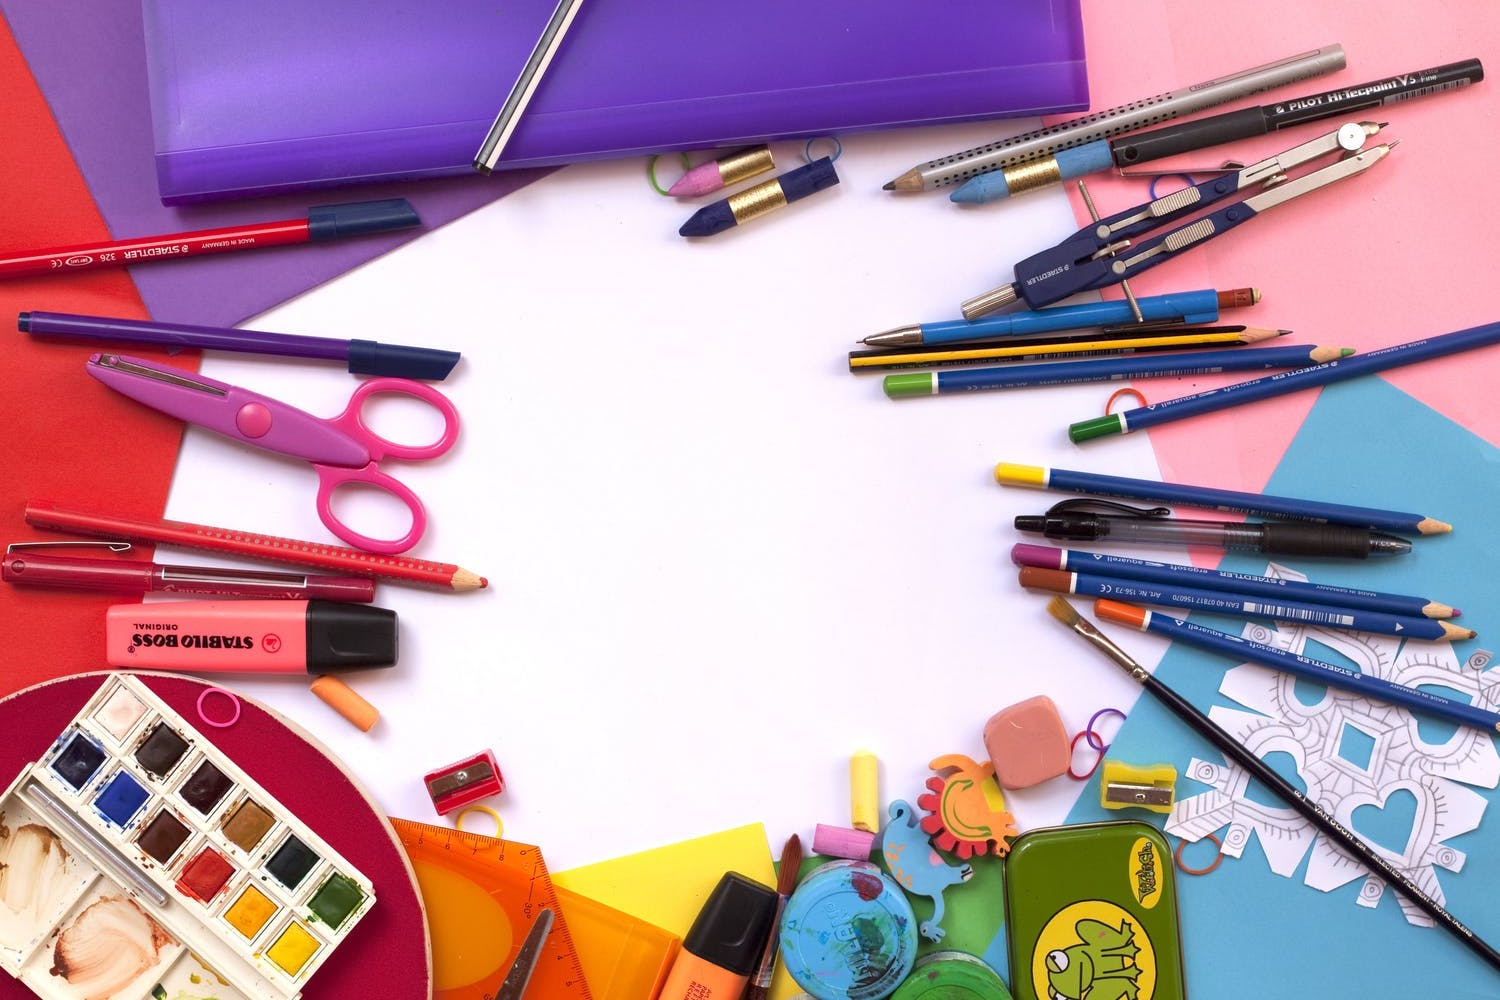 There are a lot of options when it comes to school supplies. But how many of them are actually sustainable? Image Courtesy of Pixabay.